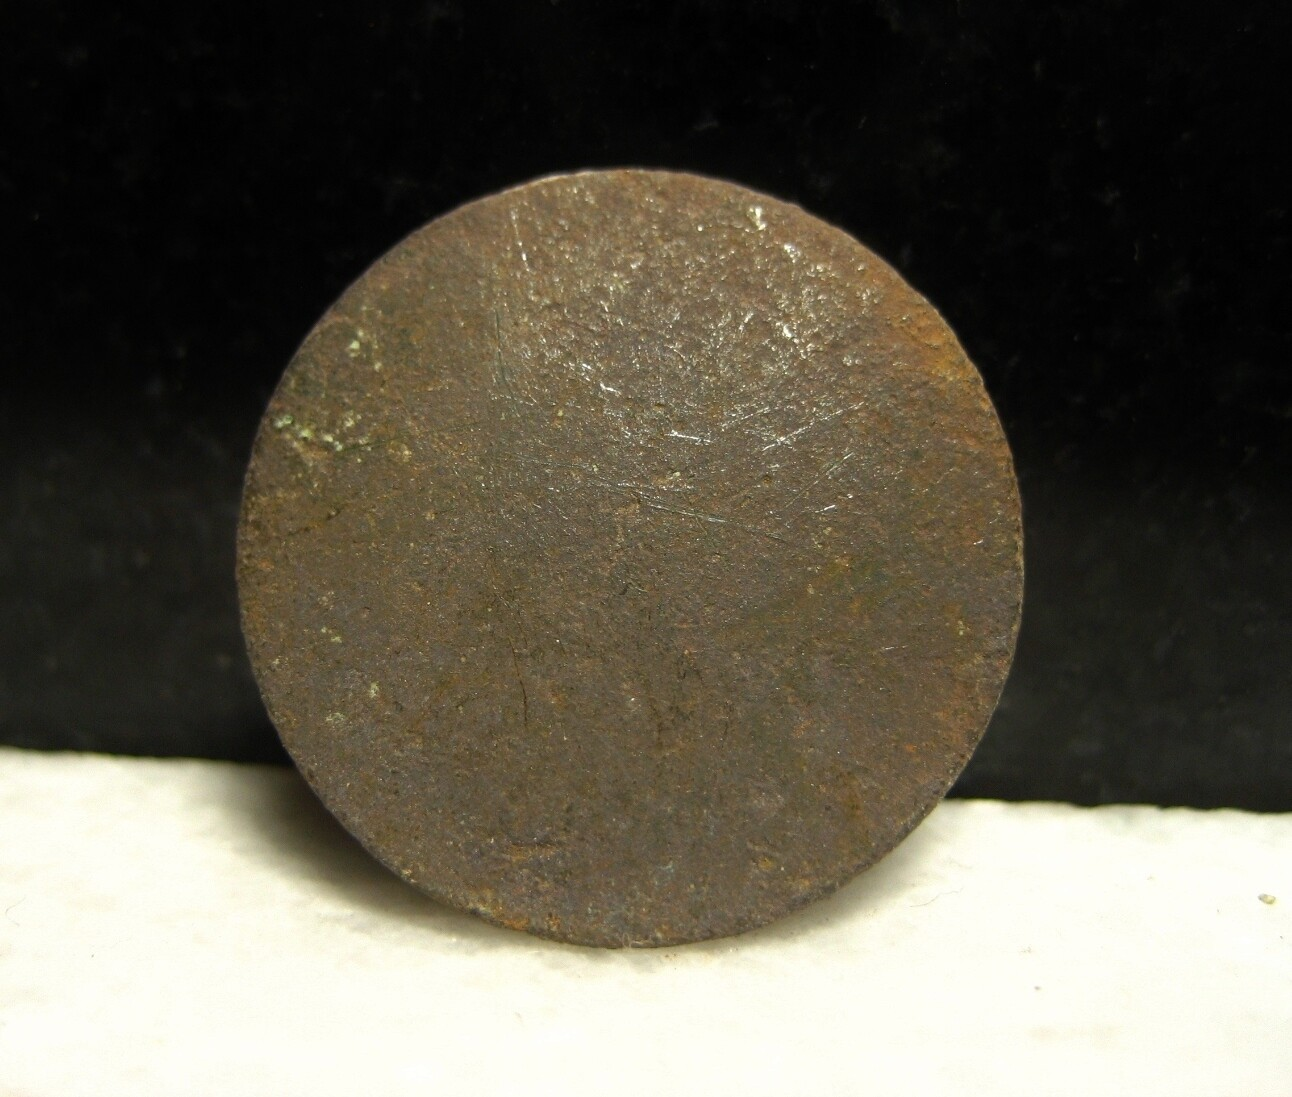 JUST ADDED ON 10/30 - THE BATTLE OF FIVE FORKS - Flat or Coin Coat Button